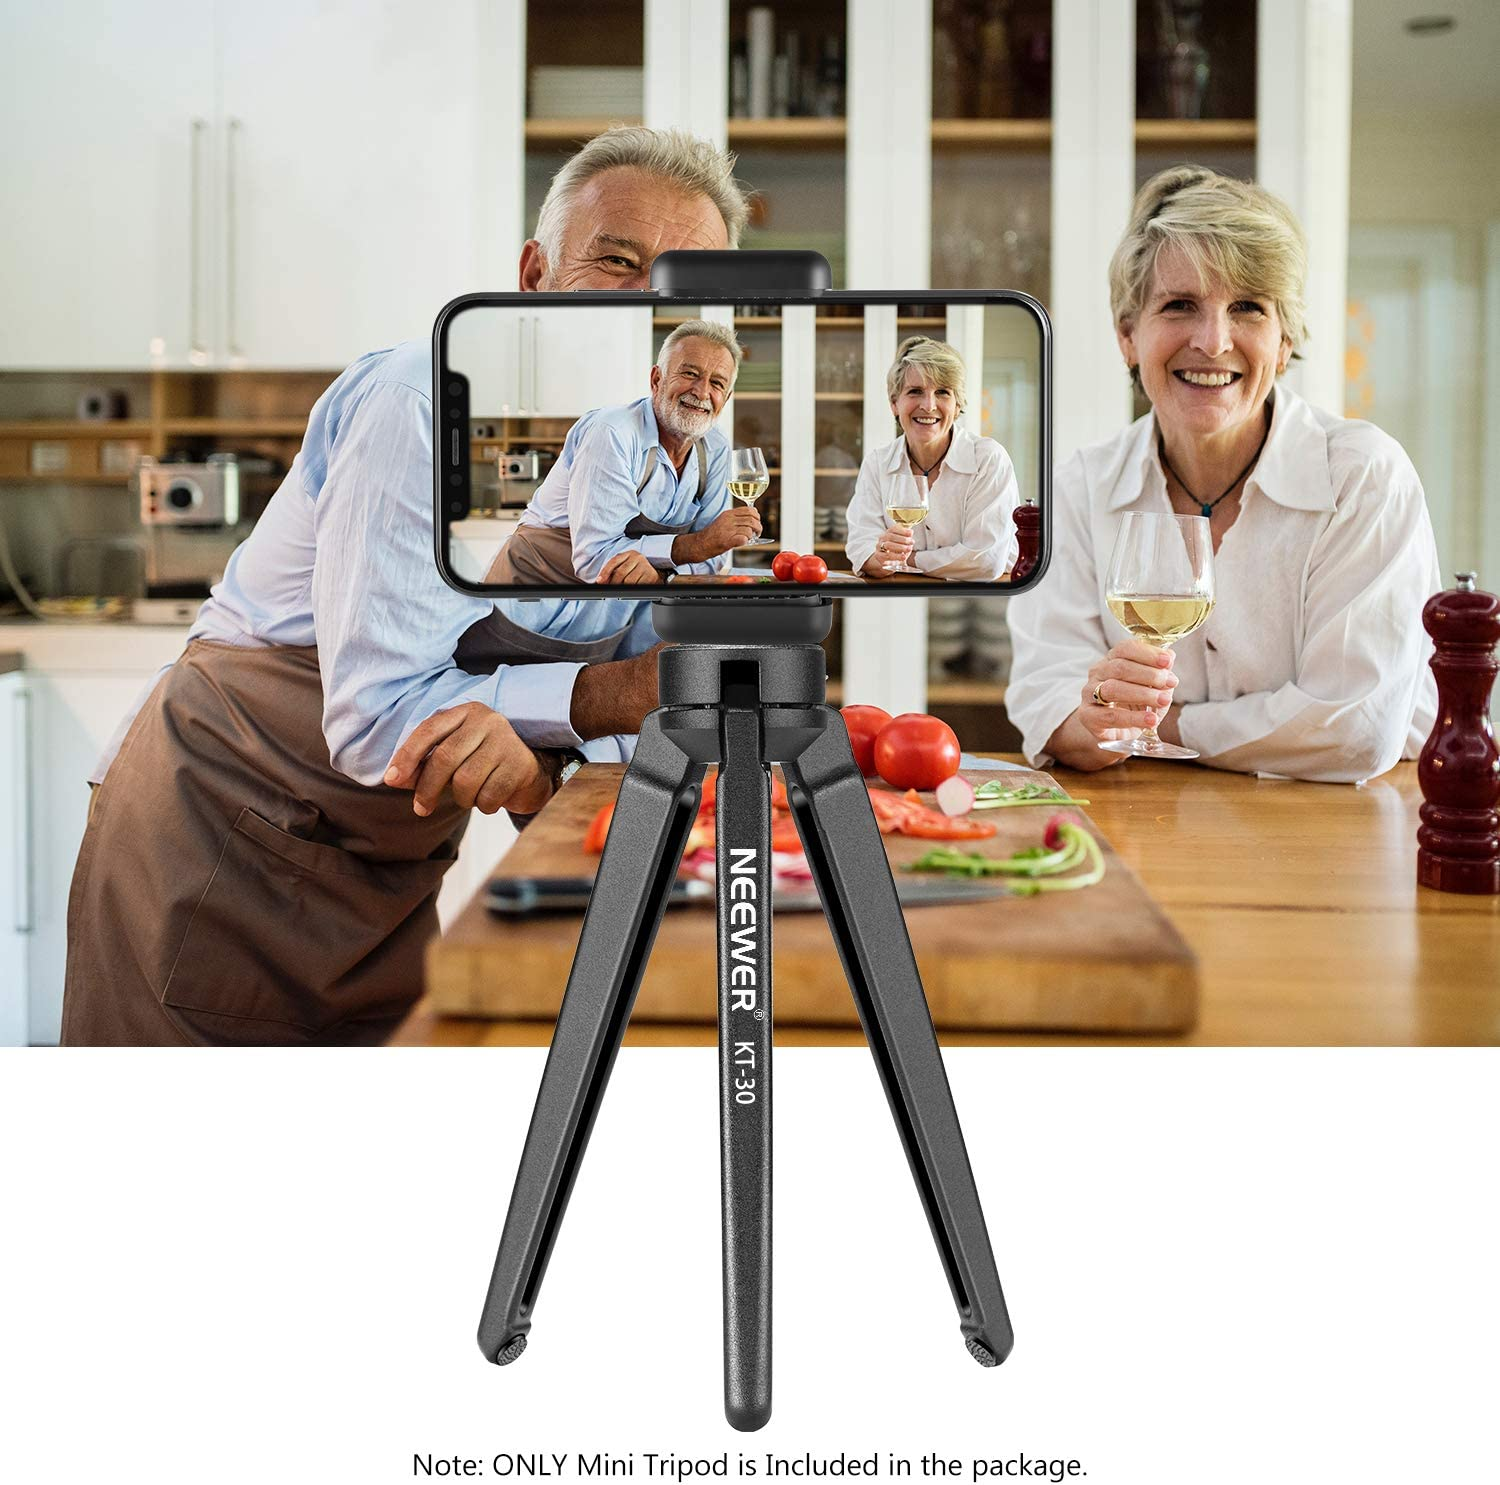 Neewer Metal Mini Tripod,Desktop Tabletop Stand Tripod for V5,Smooth 4,Crane Plus,Crane 2,OM 4,Osmo Mobile,Ronin-S,Vimble 2,iSteady Mobile Gimbal Handle Grip Stabilizer and Cameras,load up to 11lbs : Camera & Photo